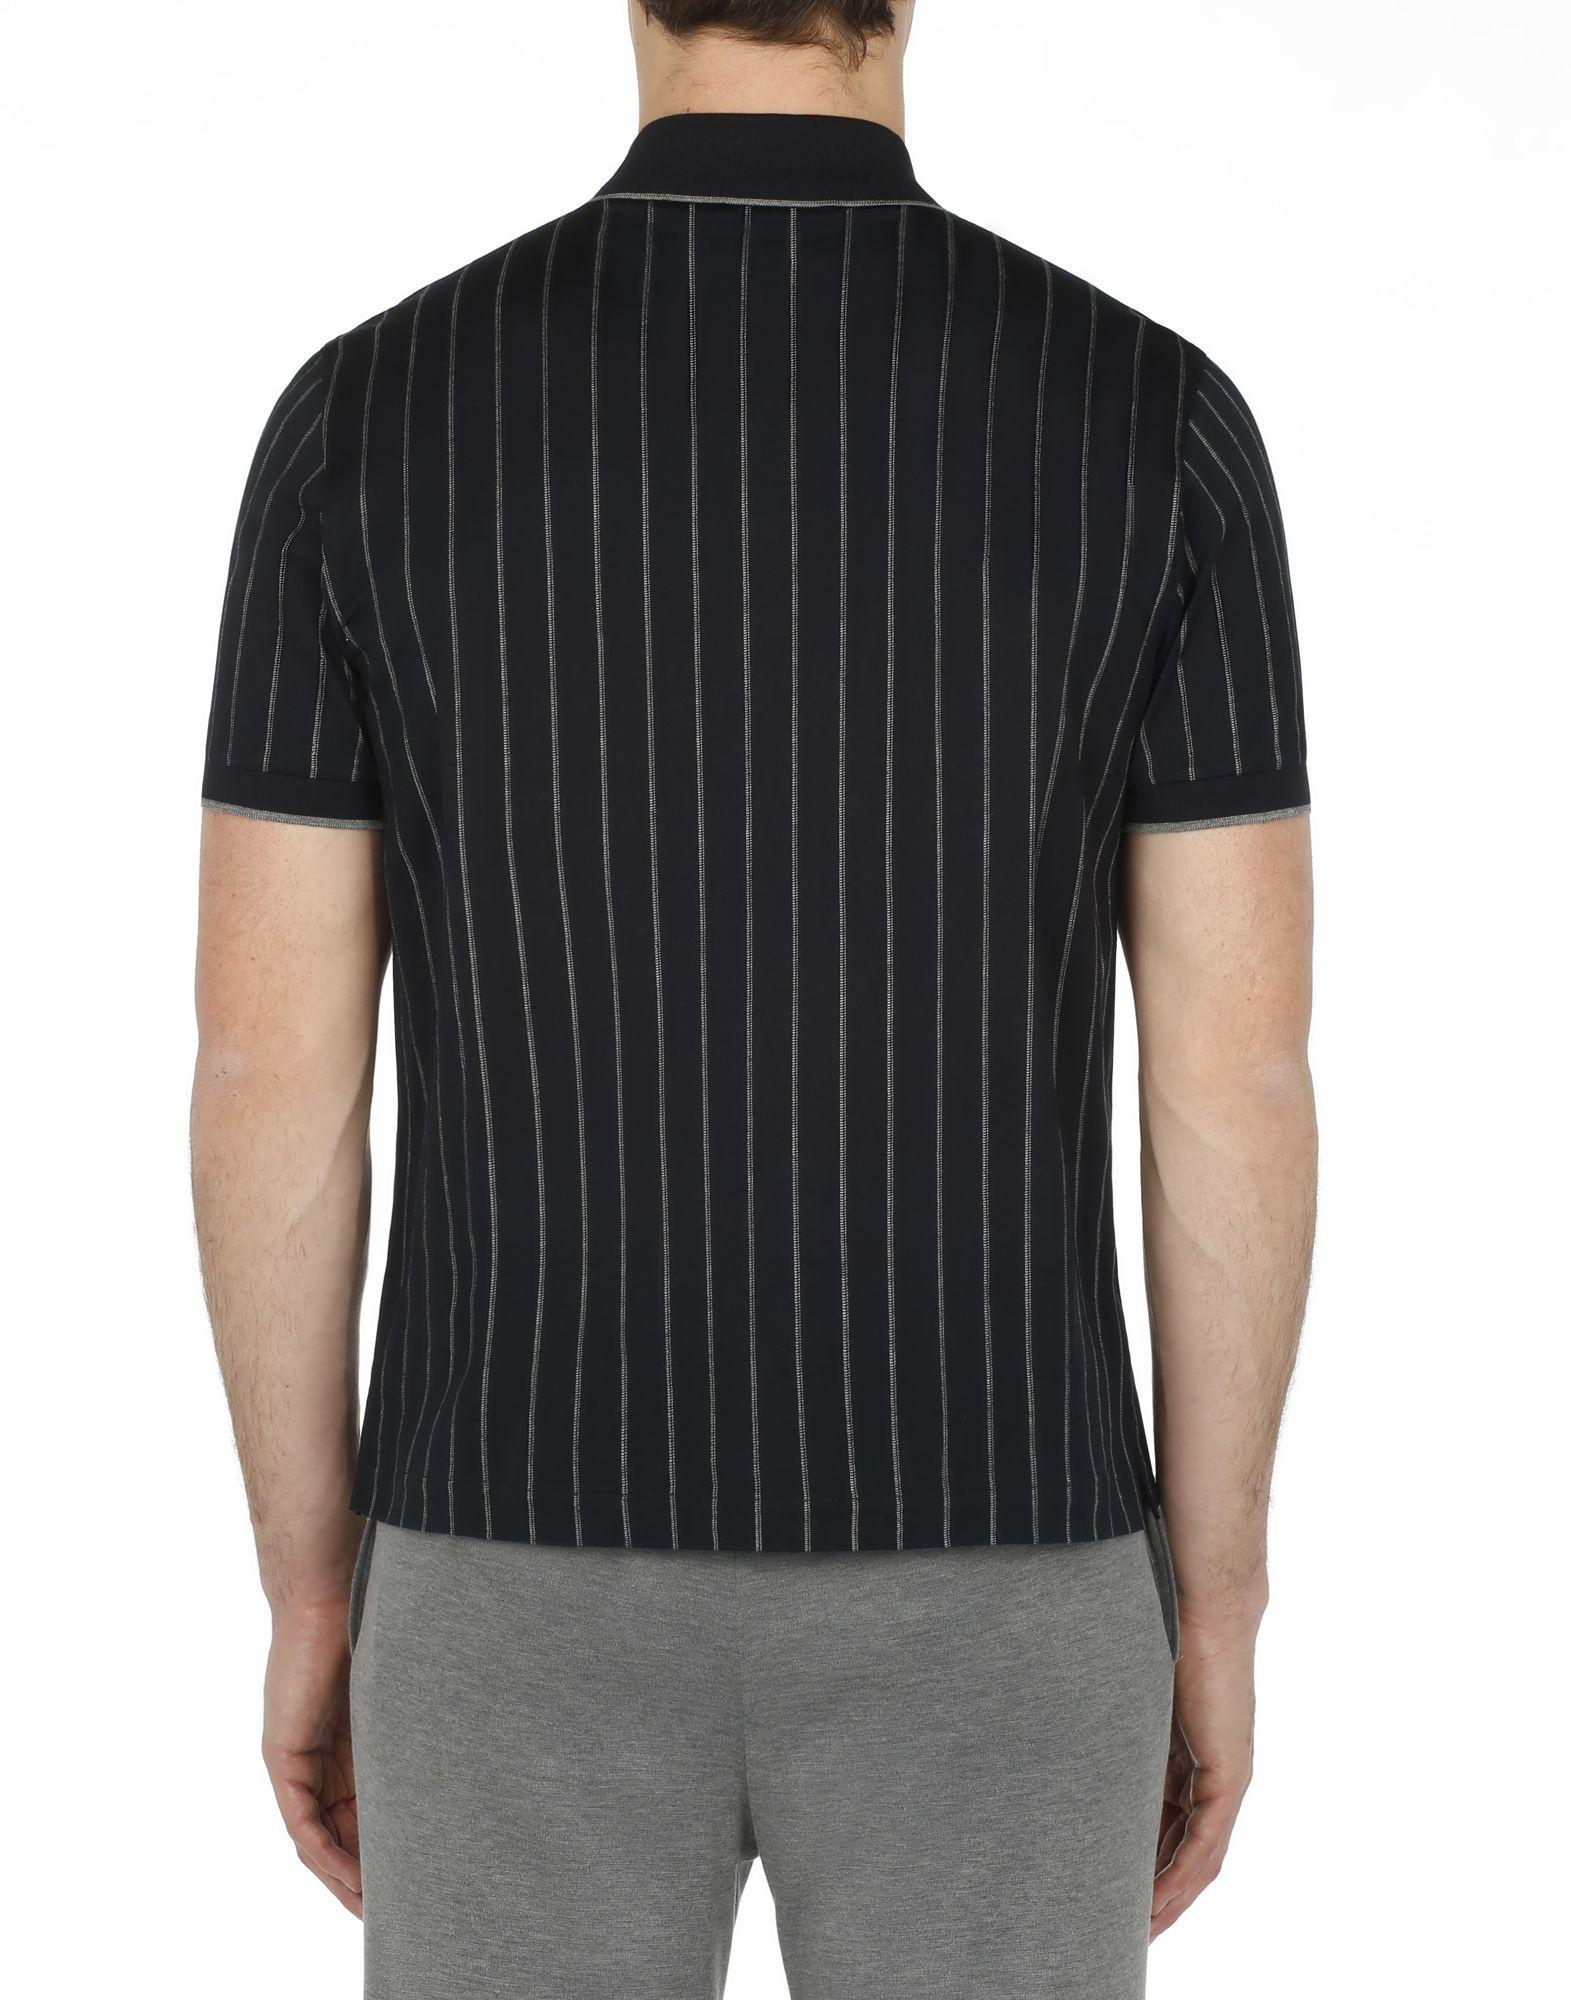 989542200 Lyst - Brioni Navy Blue Striped Polo Shirt in Blue for Men